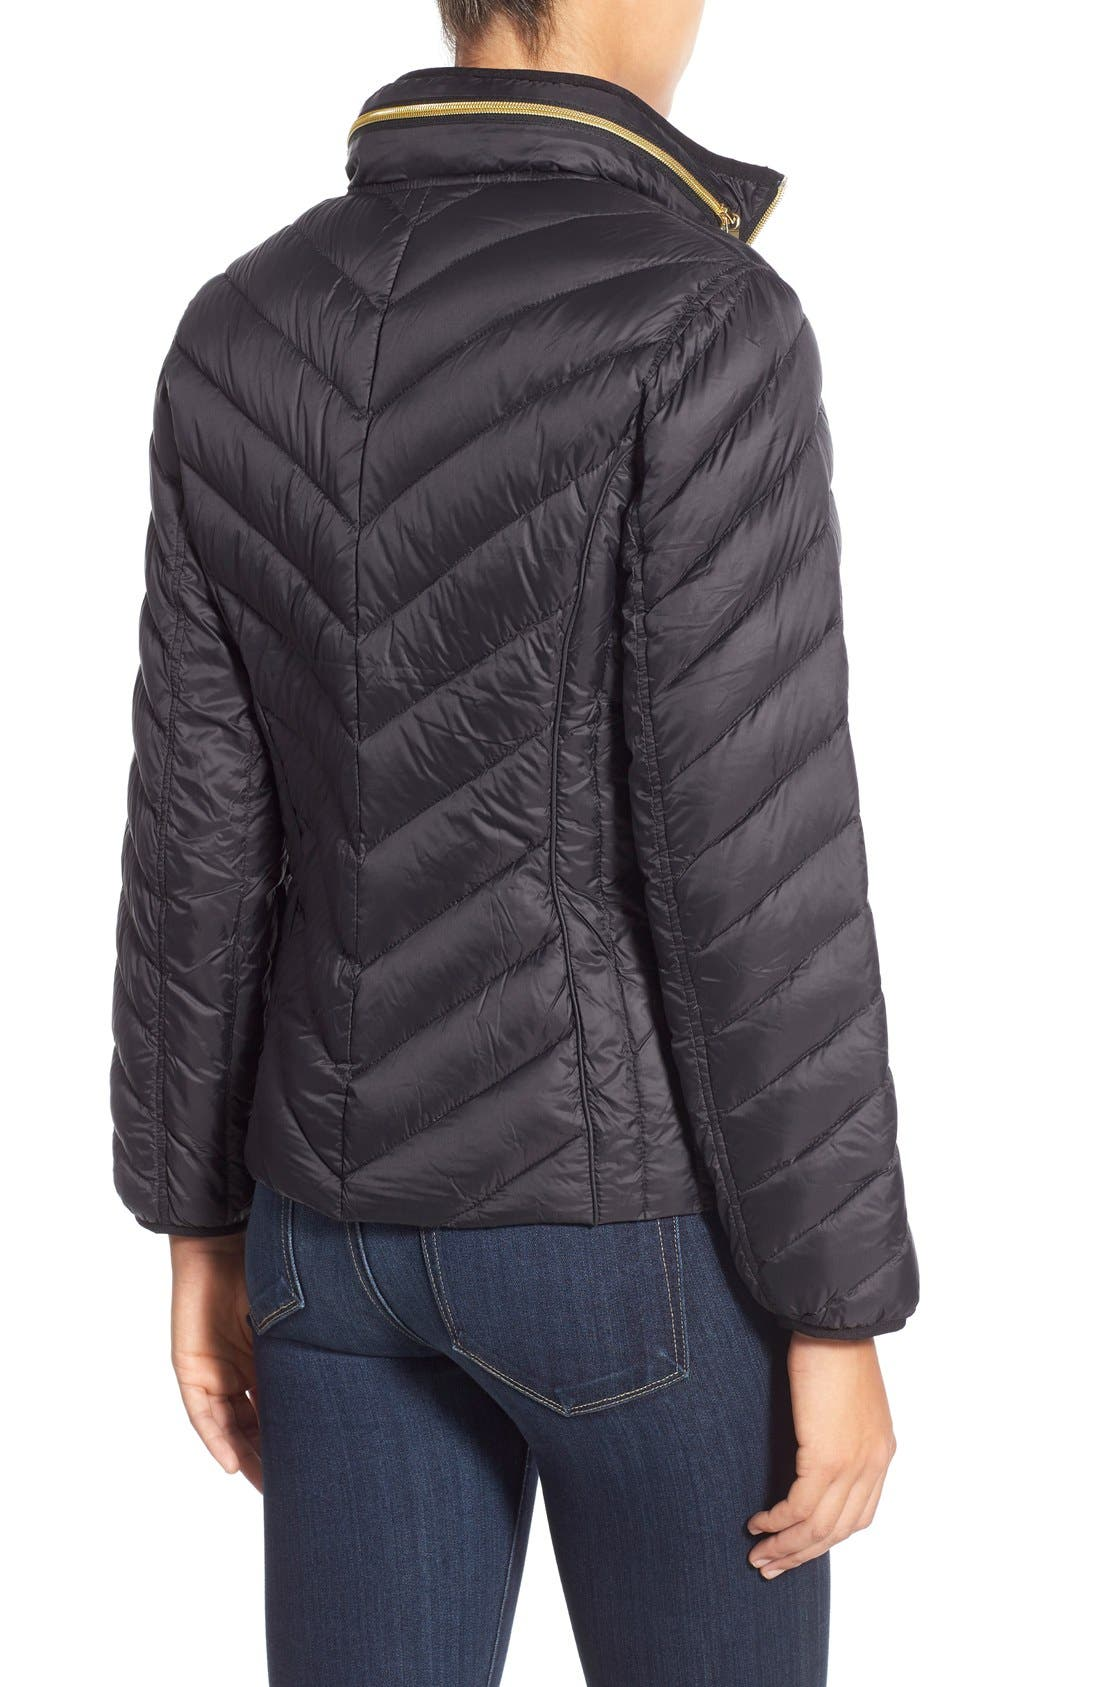 Packable Down Jacket,                             Alternate thumbnail 4, color,                             001